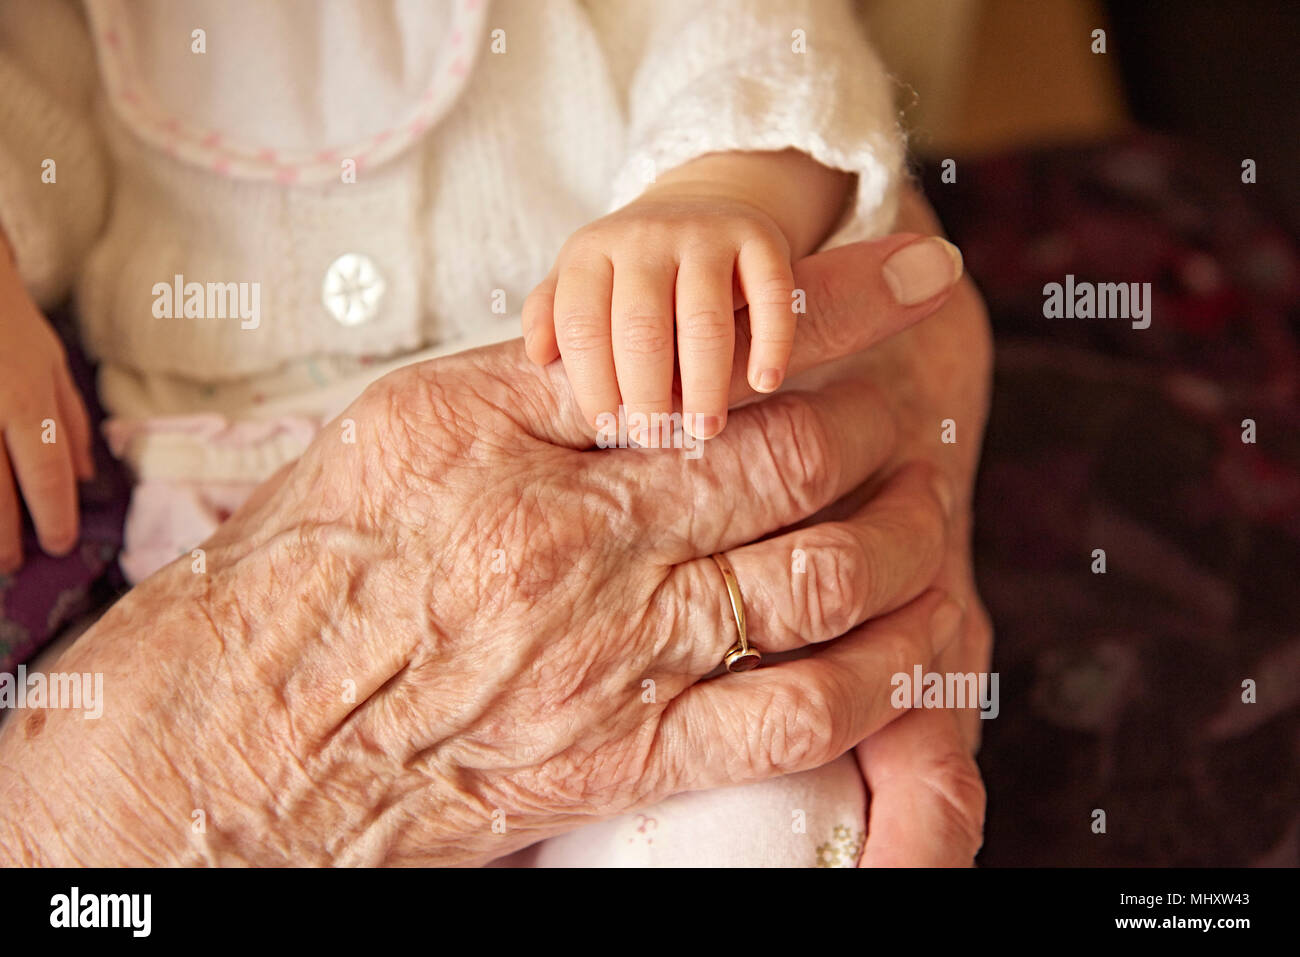 Senior woman holding baby great granddaughter, close up of hands - Stock Image